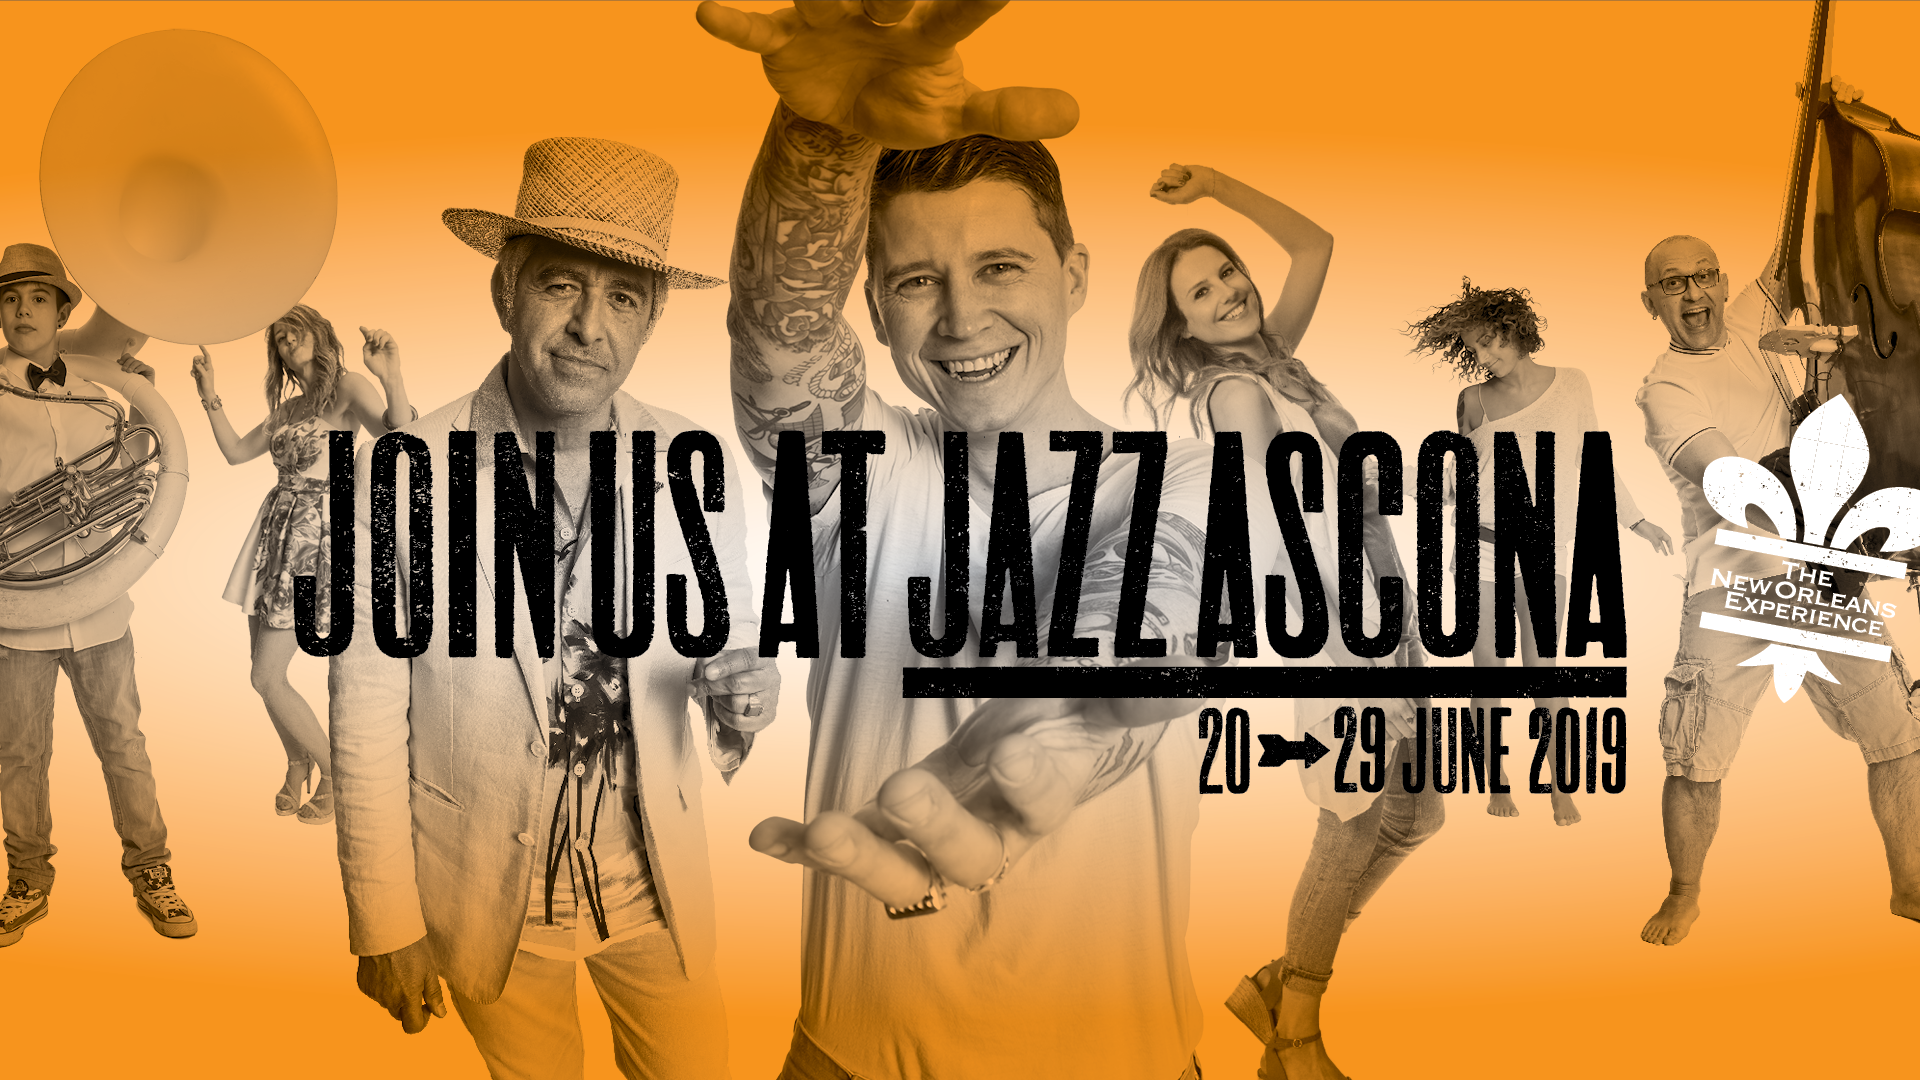 cover sito jazzascona 2019.png.2019-03-20-14-30-32.png